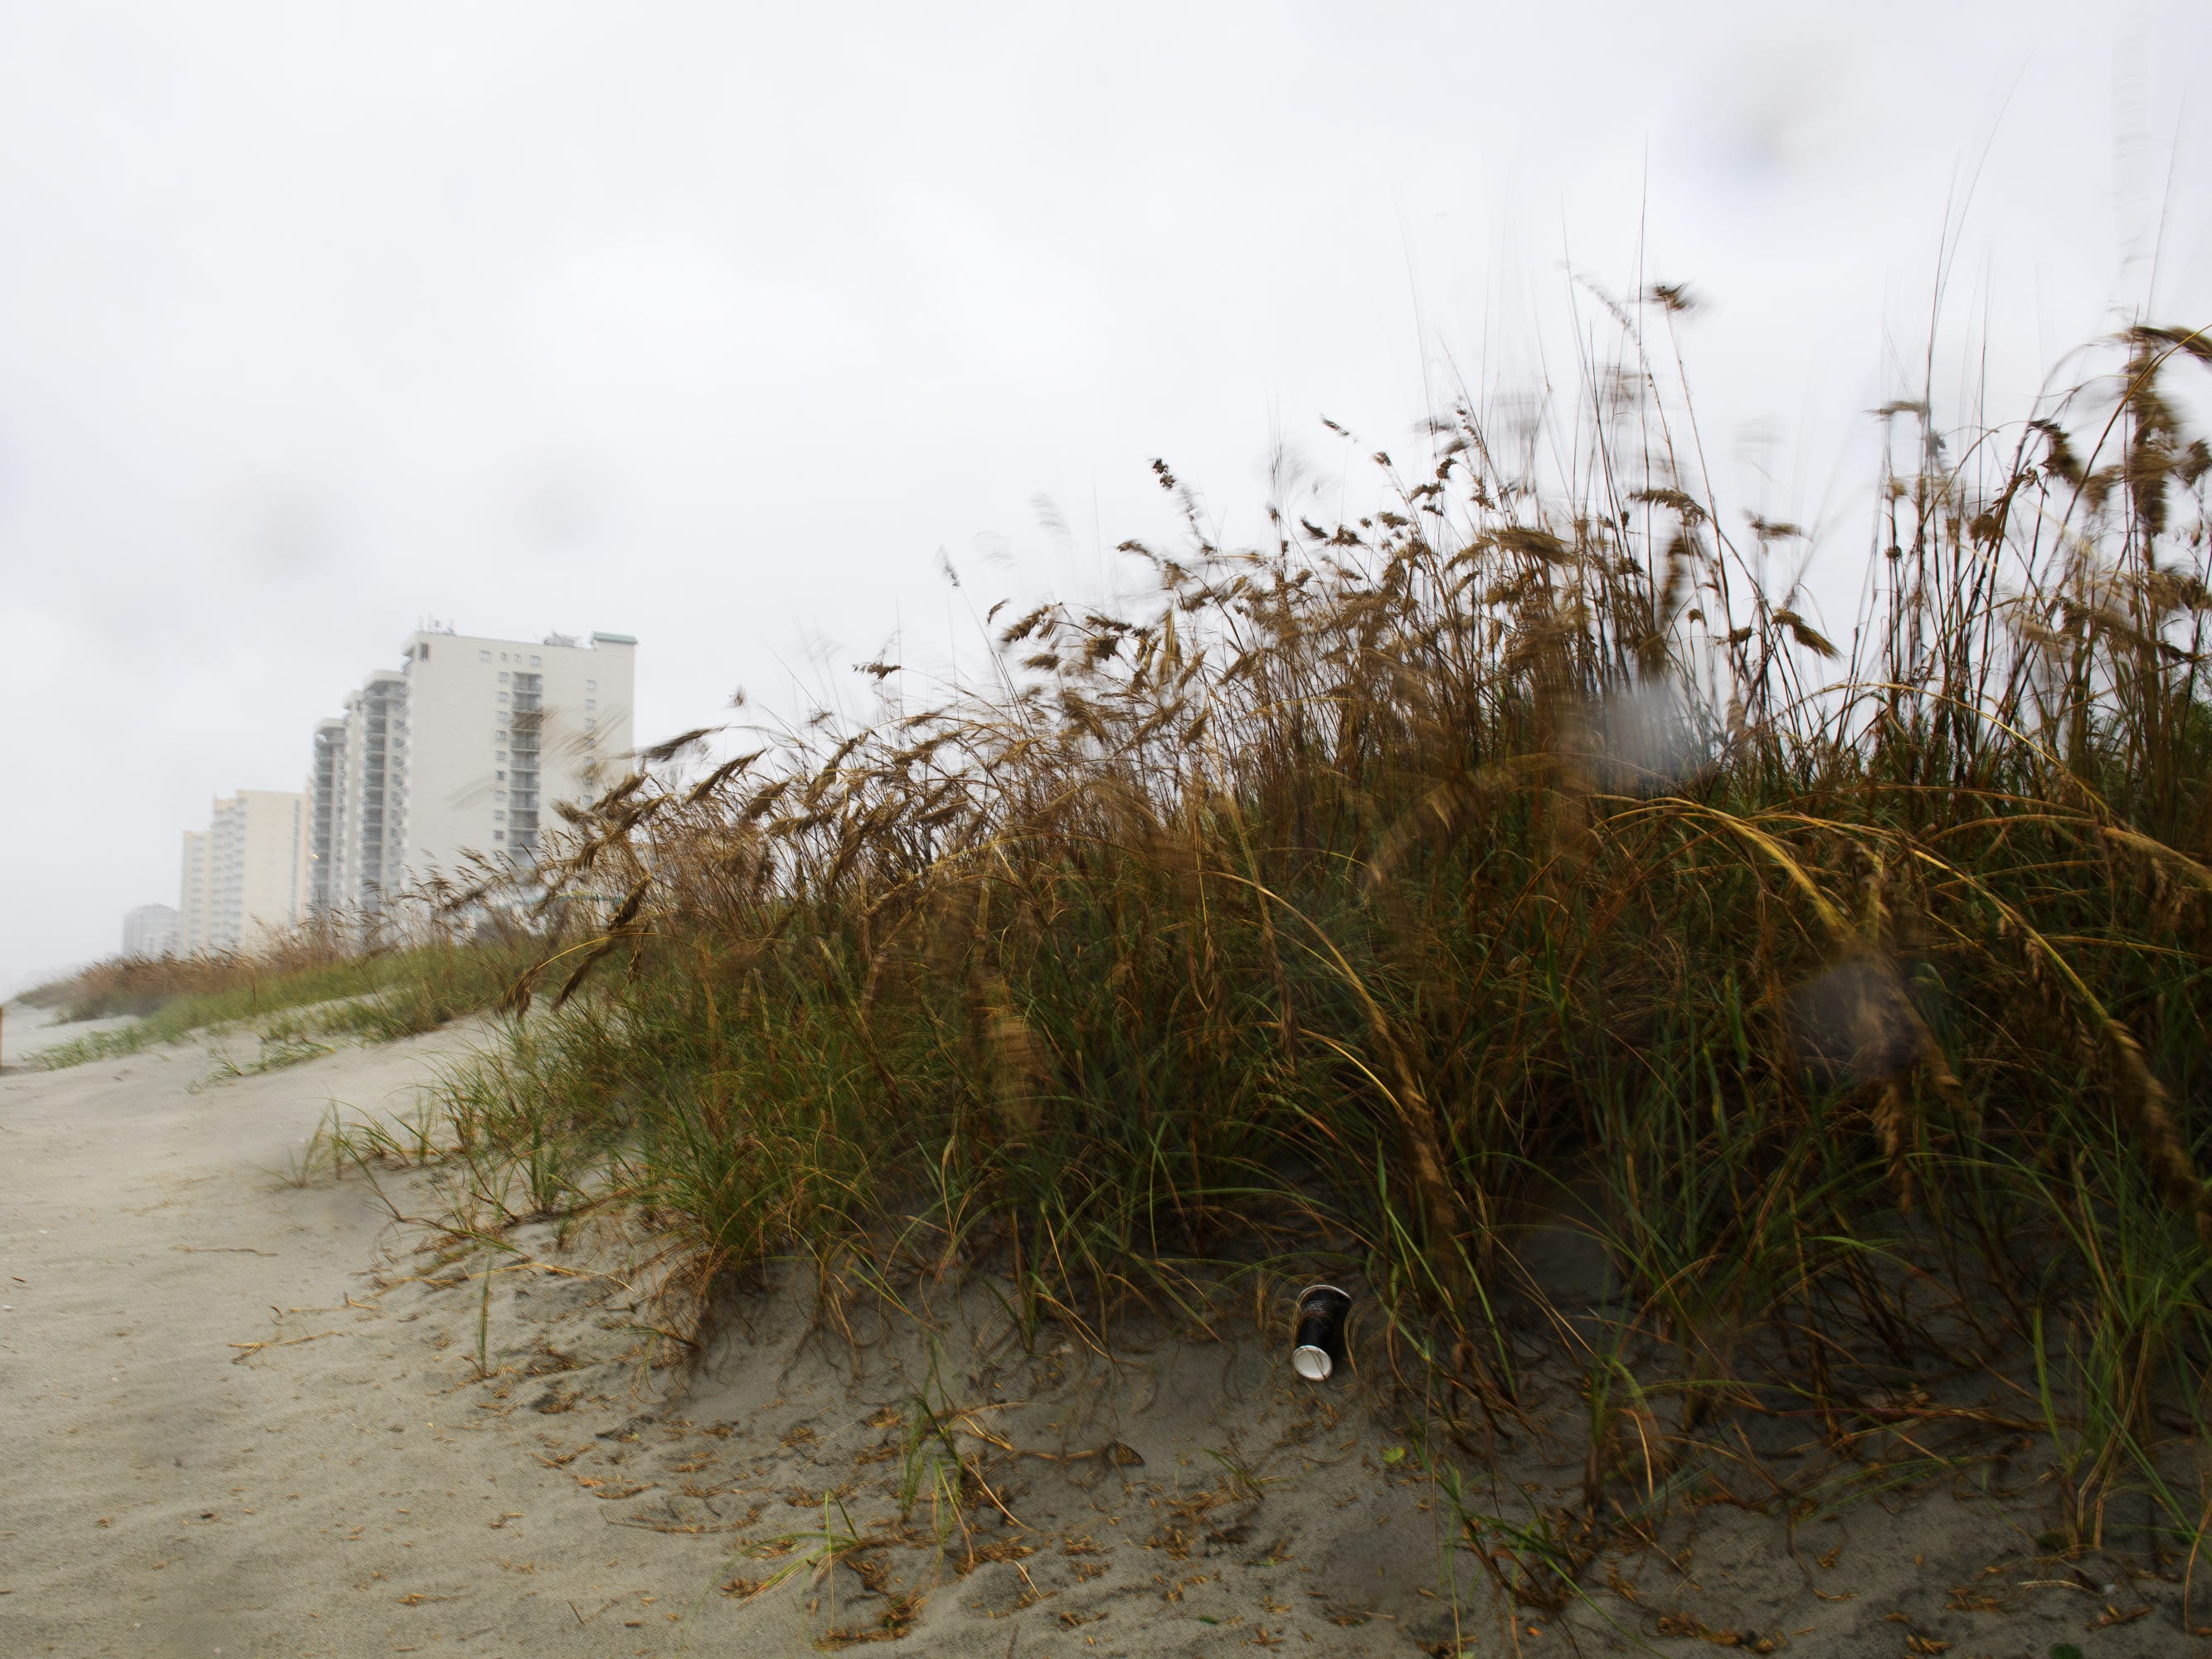 Sea oats sway in the wind as conditions begin to worsen as Hurricane Florence inches towards North Myrtle Beach in South Carolina on Friday, Sept. 14, 2018.